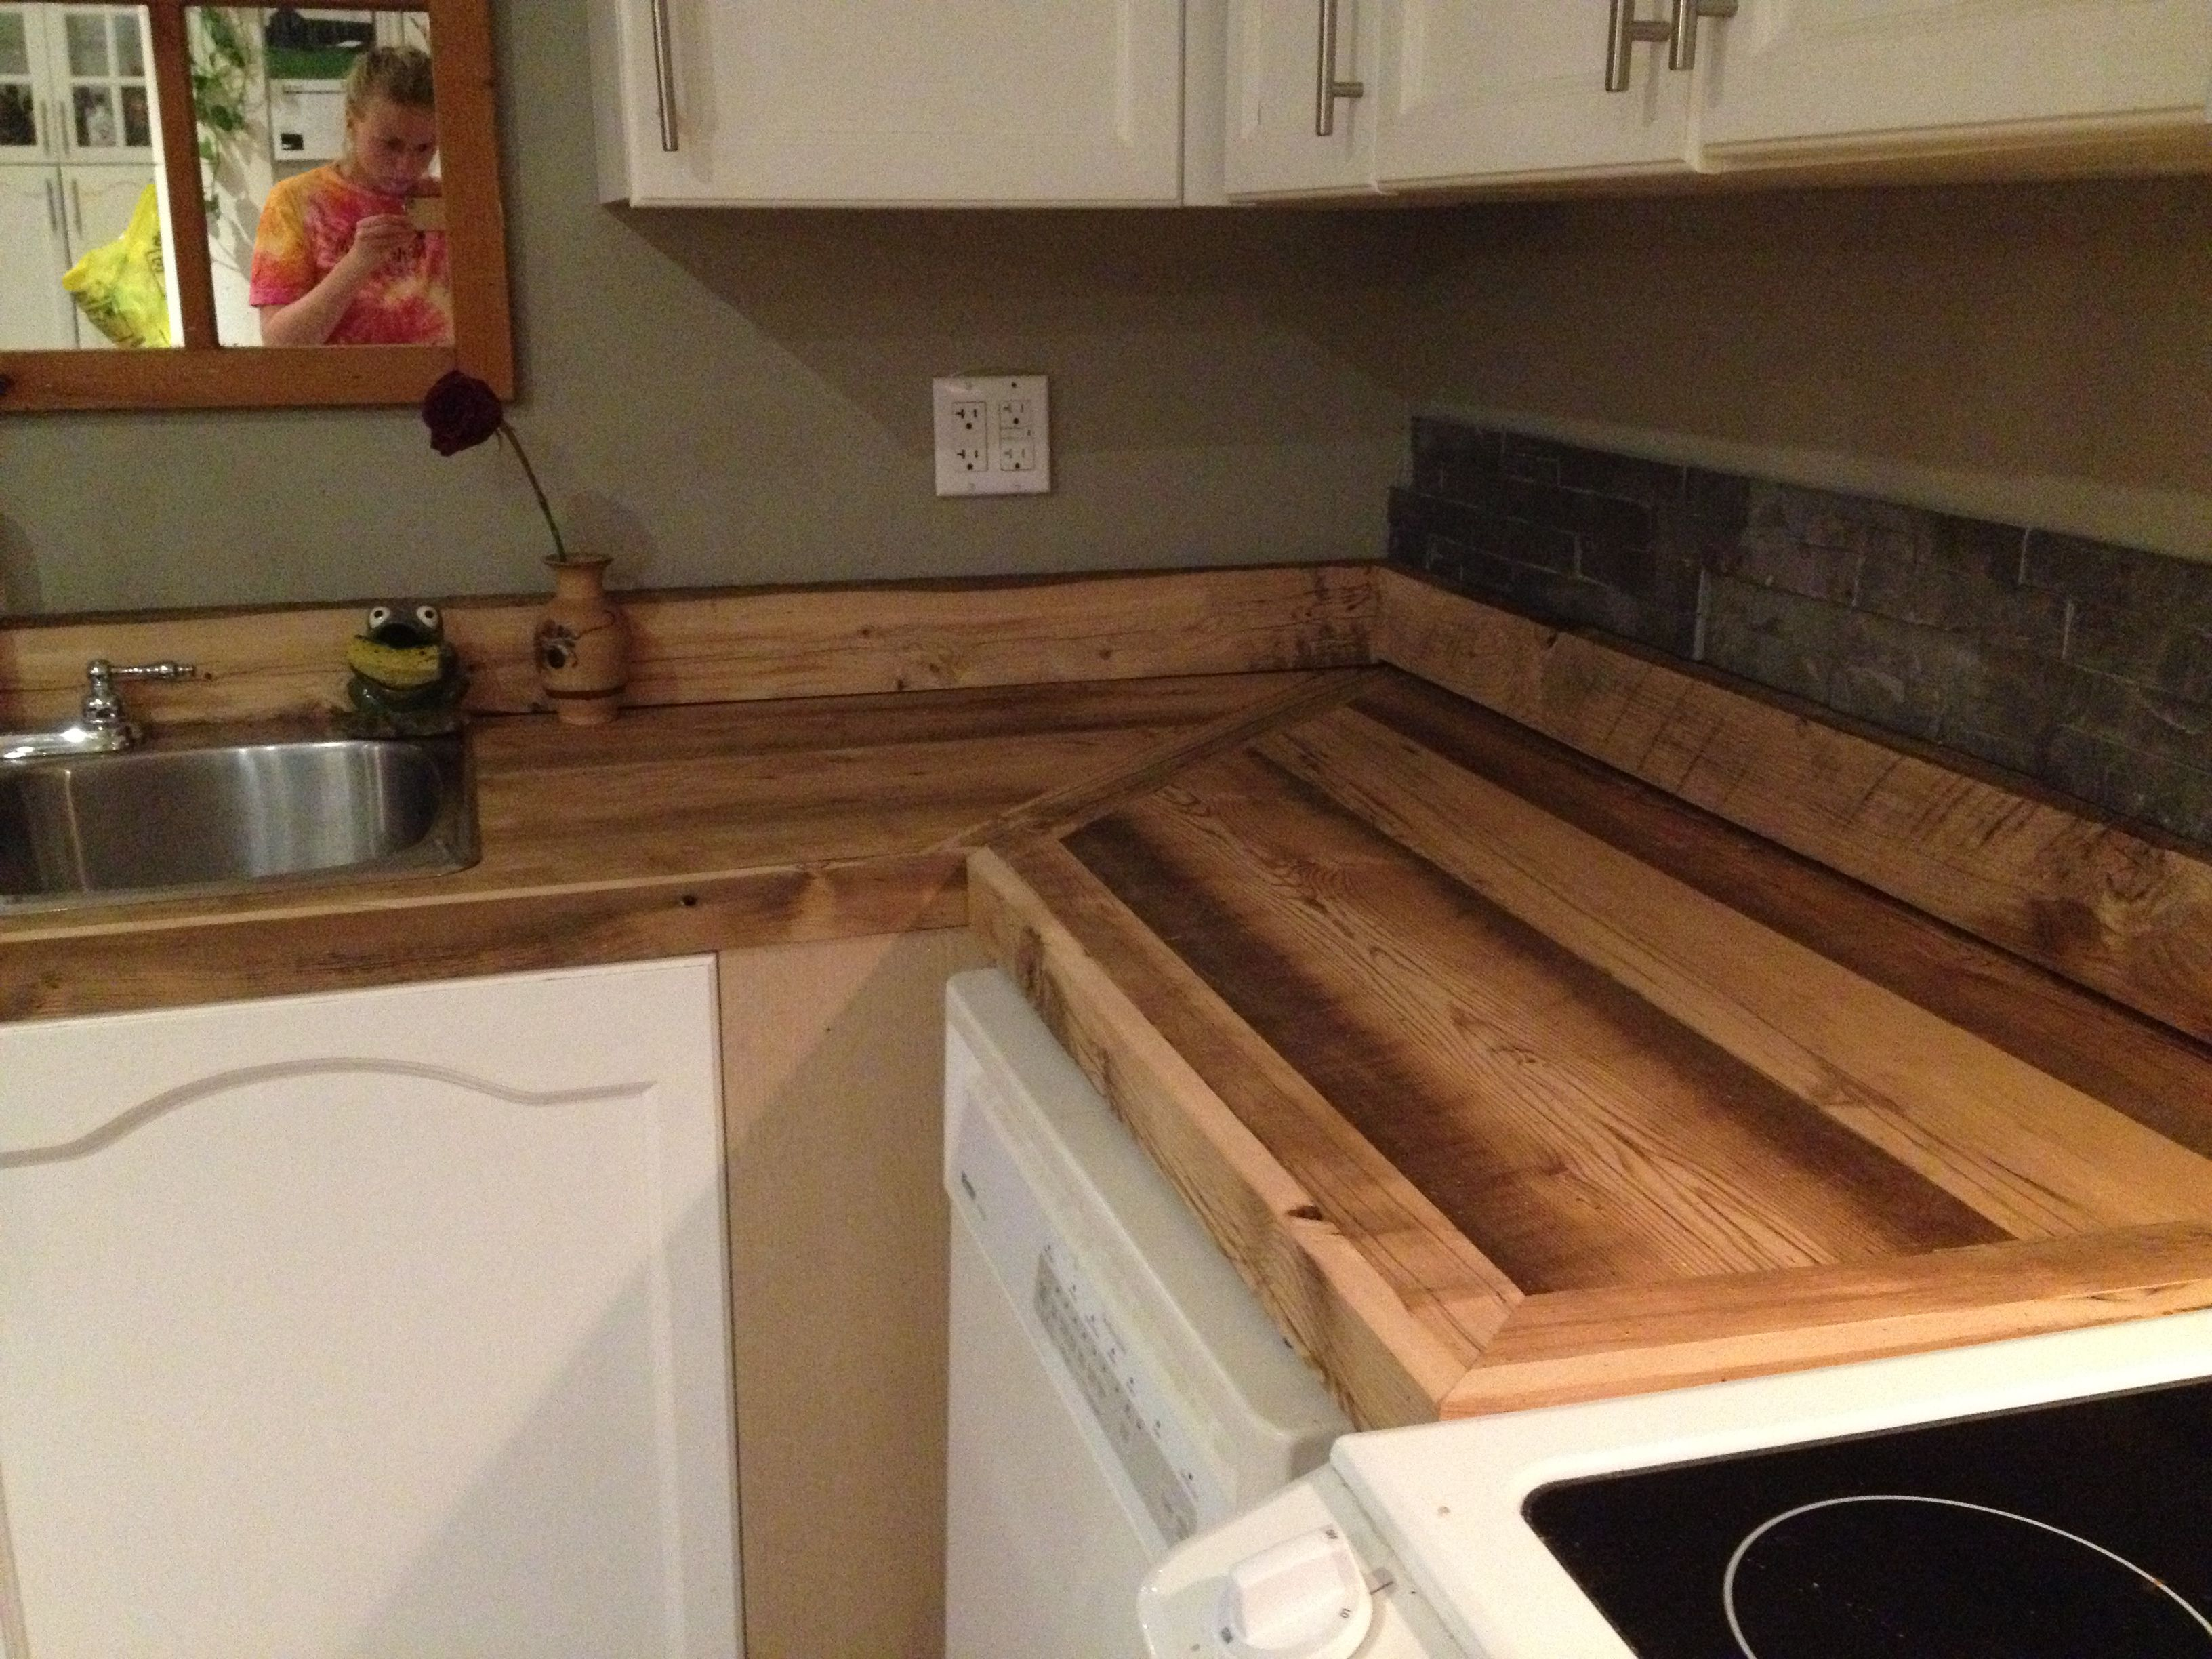 Barn Board Kitchen Cabinets Barn Board Countertops Rustic Barn Boards Wood